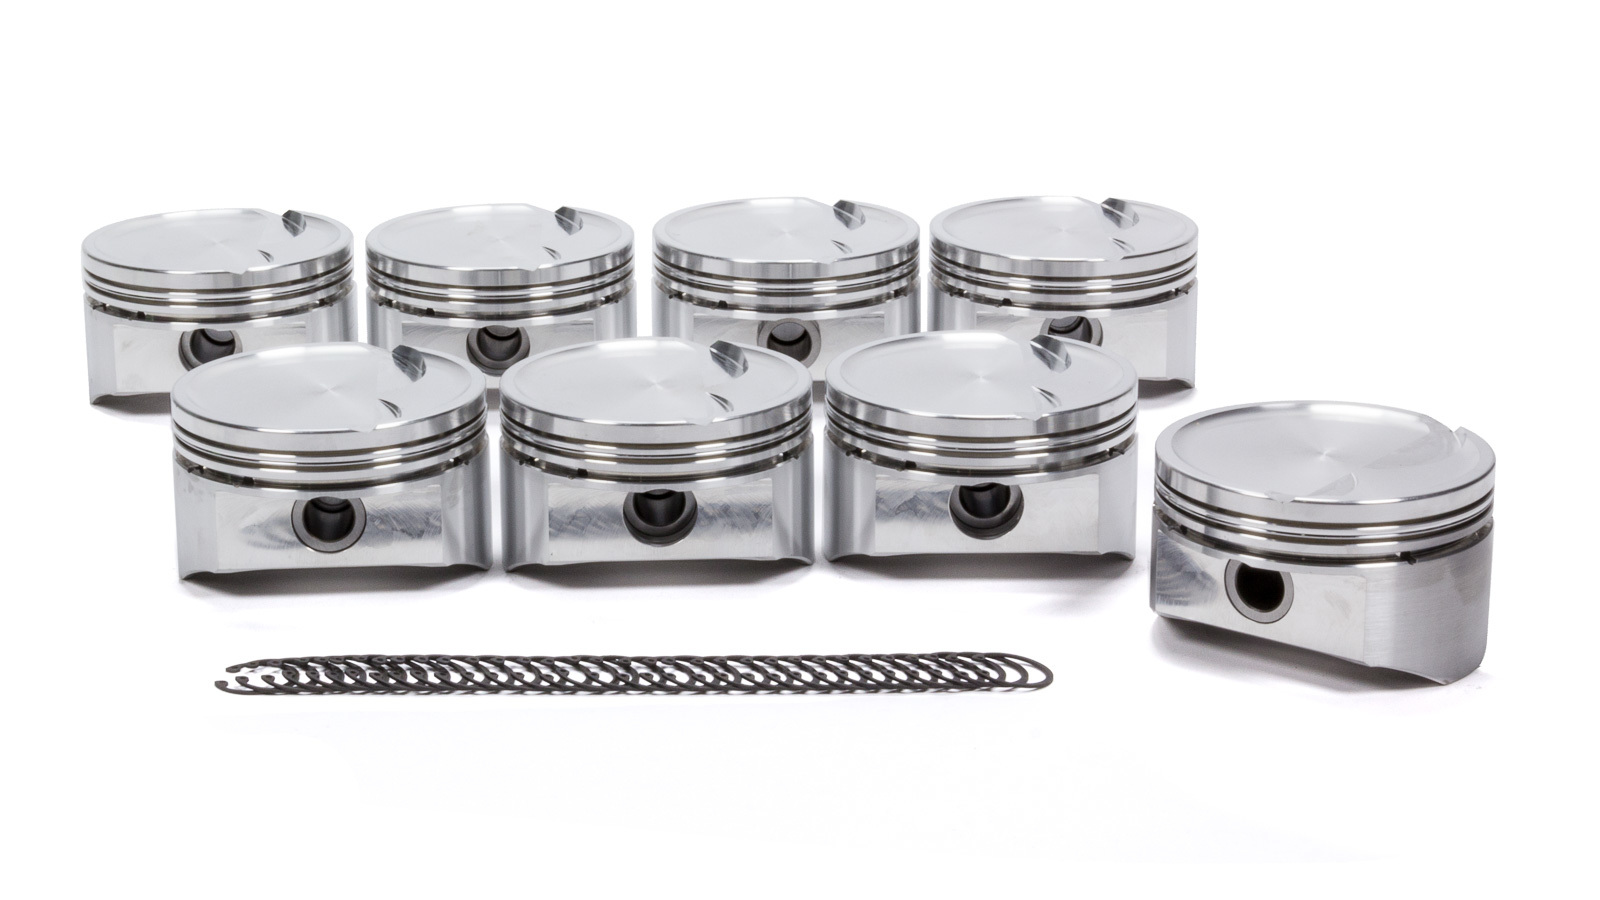 DSS Racing 1823BSX-4000 Piston, SX Series, Forged, 4.000 in Bore, 1.5 x 1.5 x 3.0 mm Ring Grooves, Minus 15.0 cc, GM LS-Series, Set of 8